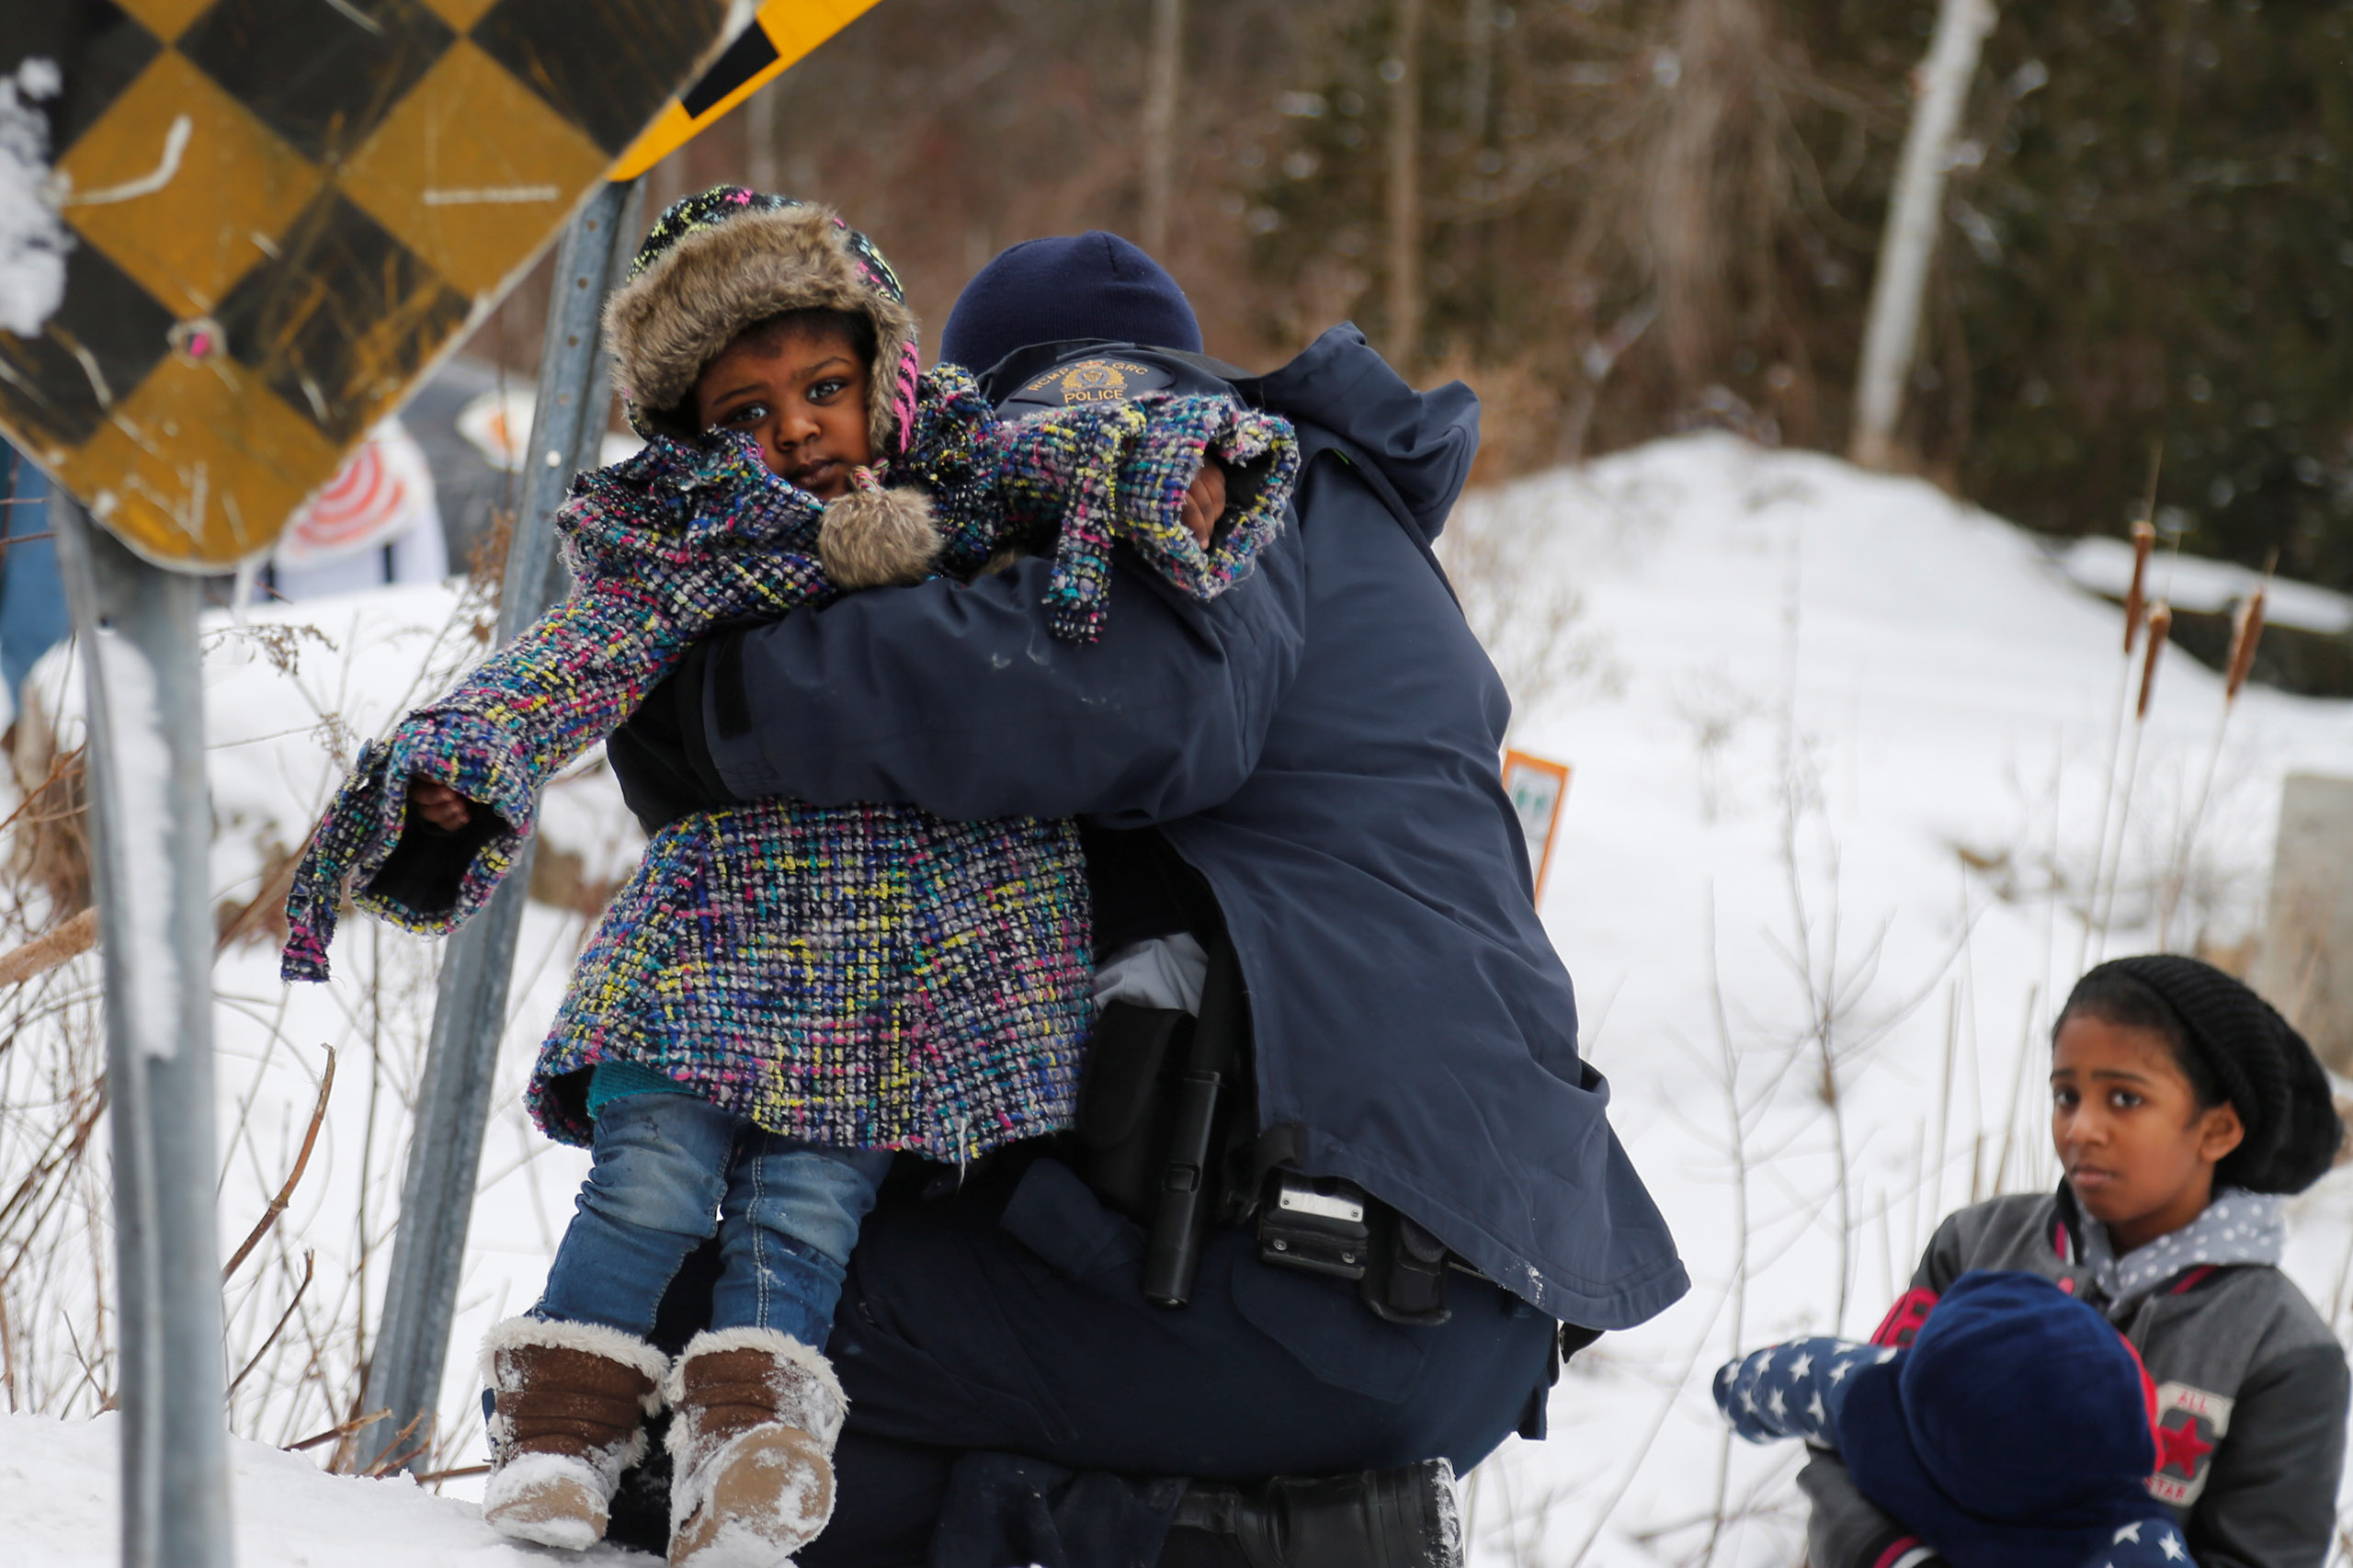 A child is helped up a hill by Royal Canadian Mounted Police (RCMP) officers after a family arriving by taxi and claiming to be from Sudan are taken into custody after walking across the U.S.-Canada border into Hemmingford, Quebec, on Feb. 12, 2017.